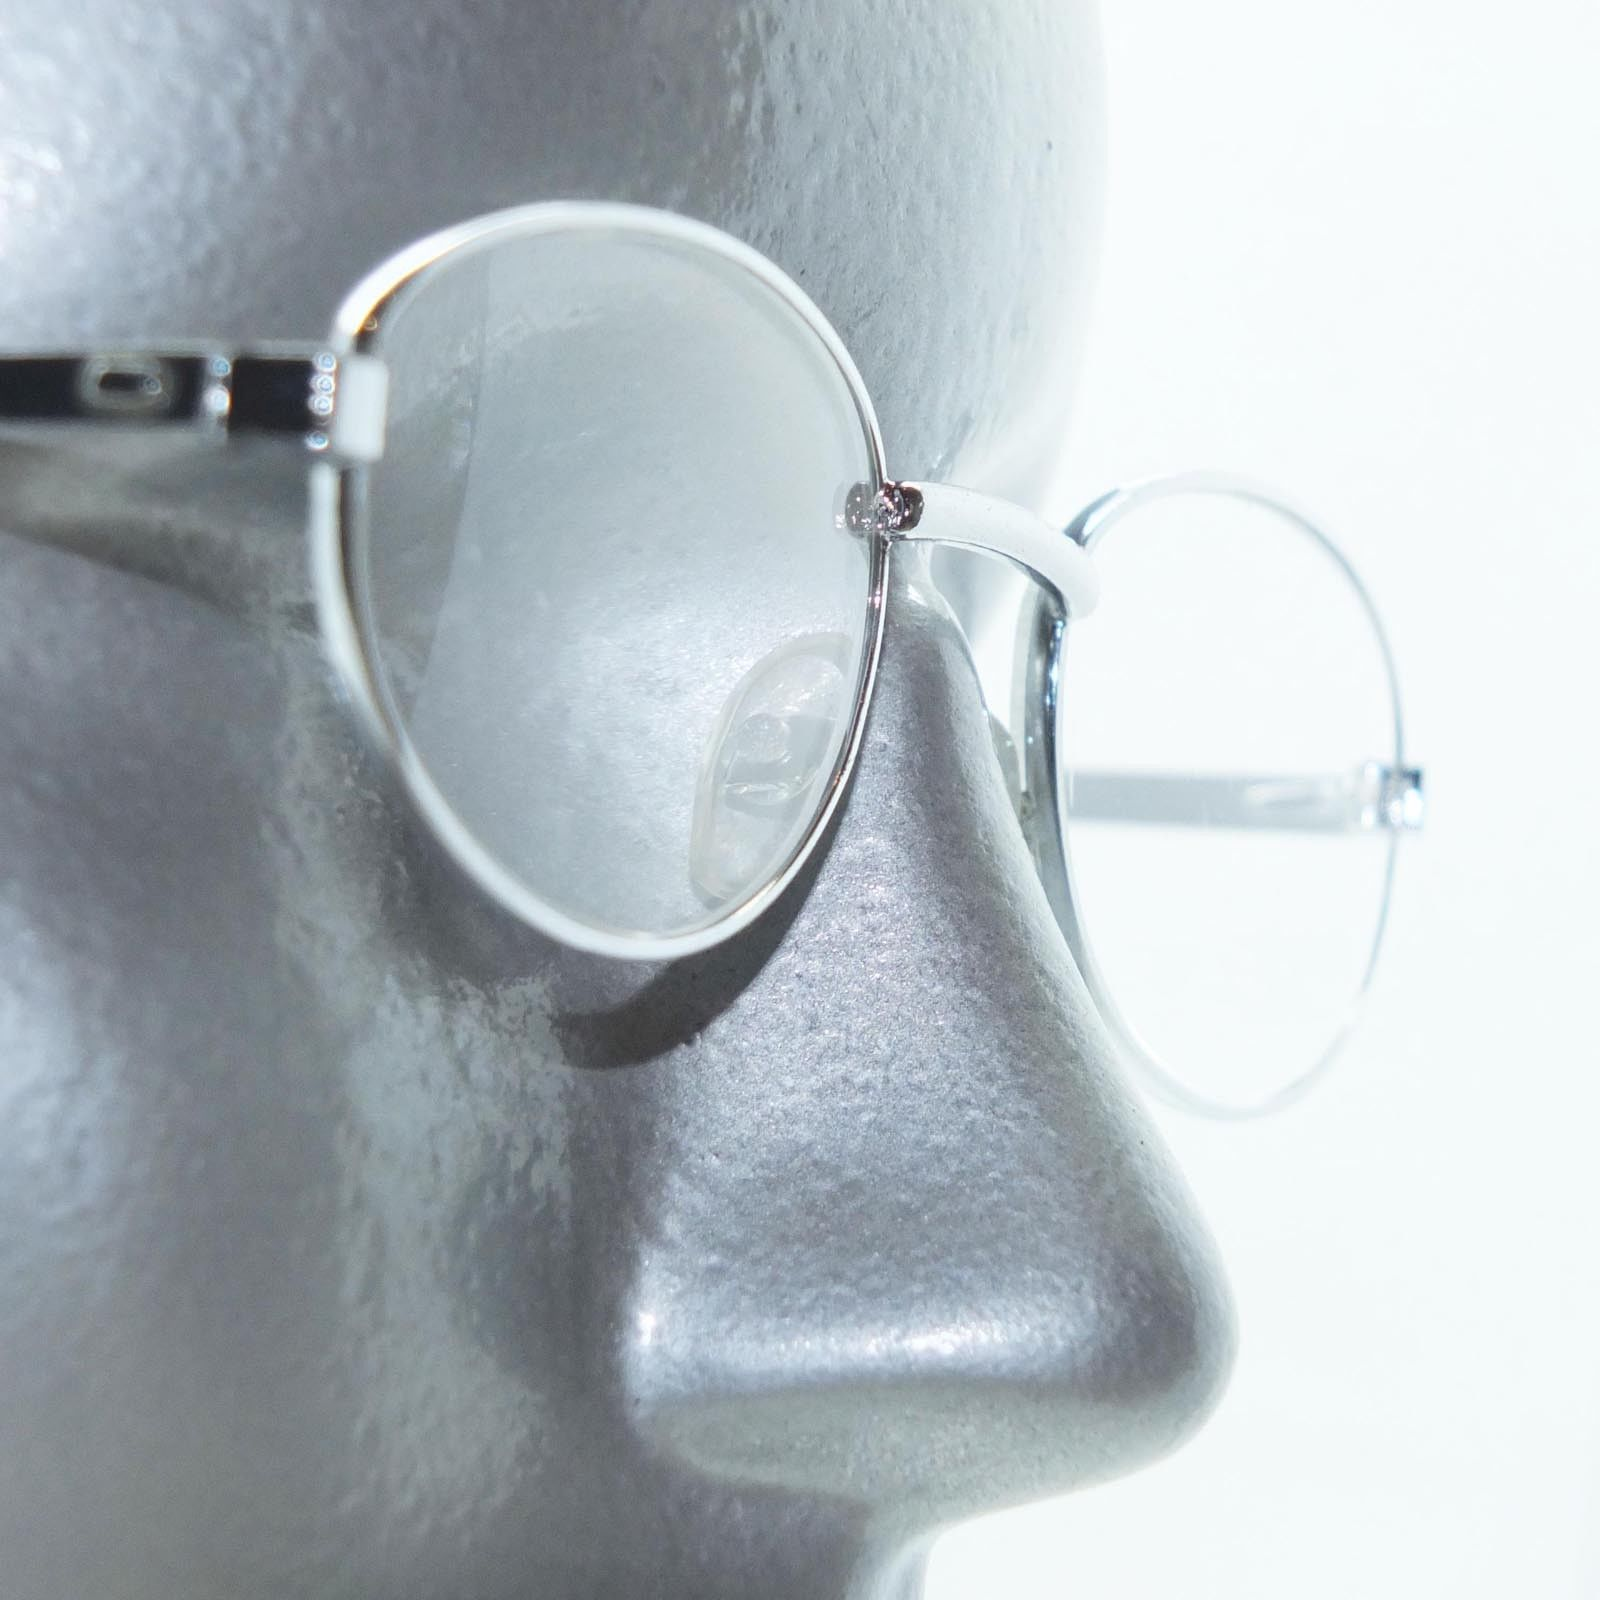 1350c89aa76 S l1600. S l1600. Previous. Reading Glasses Super Petite Oval Small Silver Metal  Frame +1.75 Lens